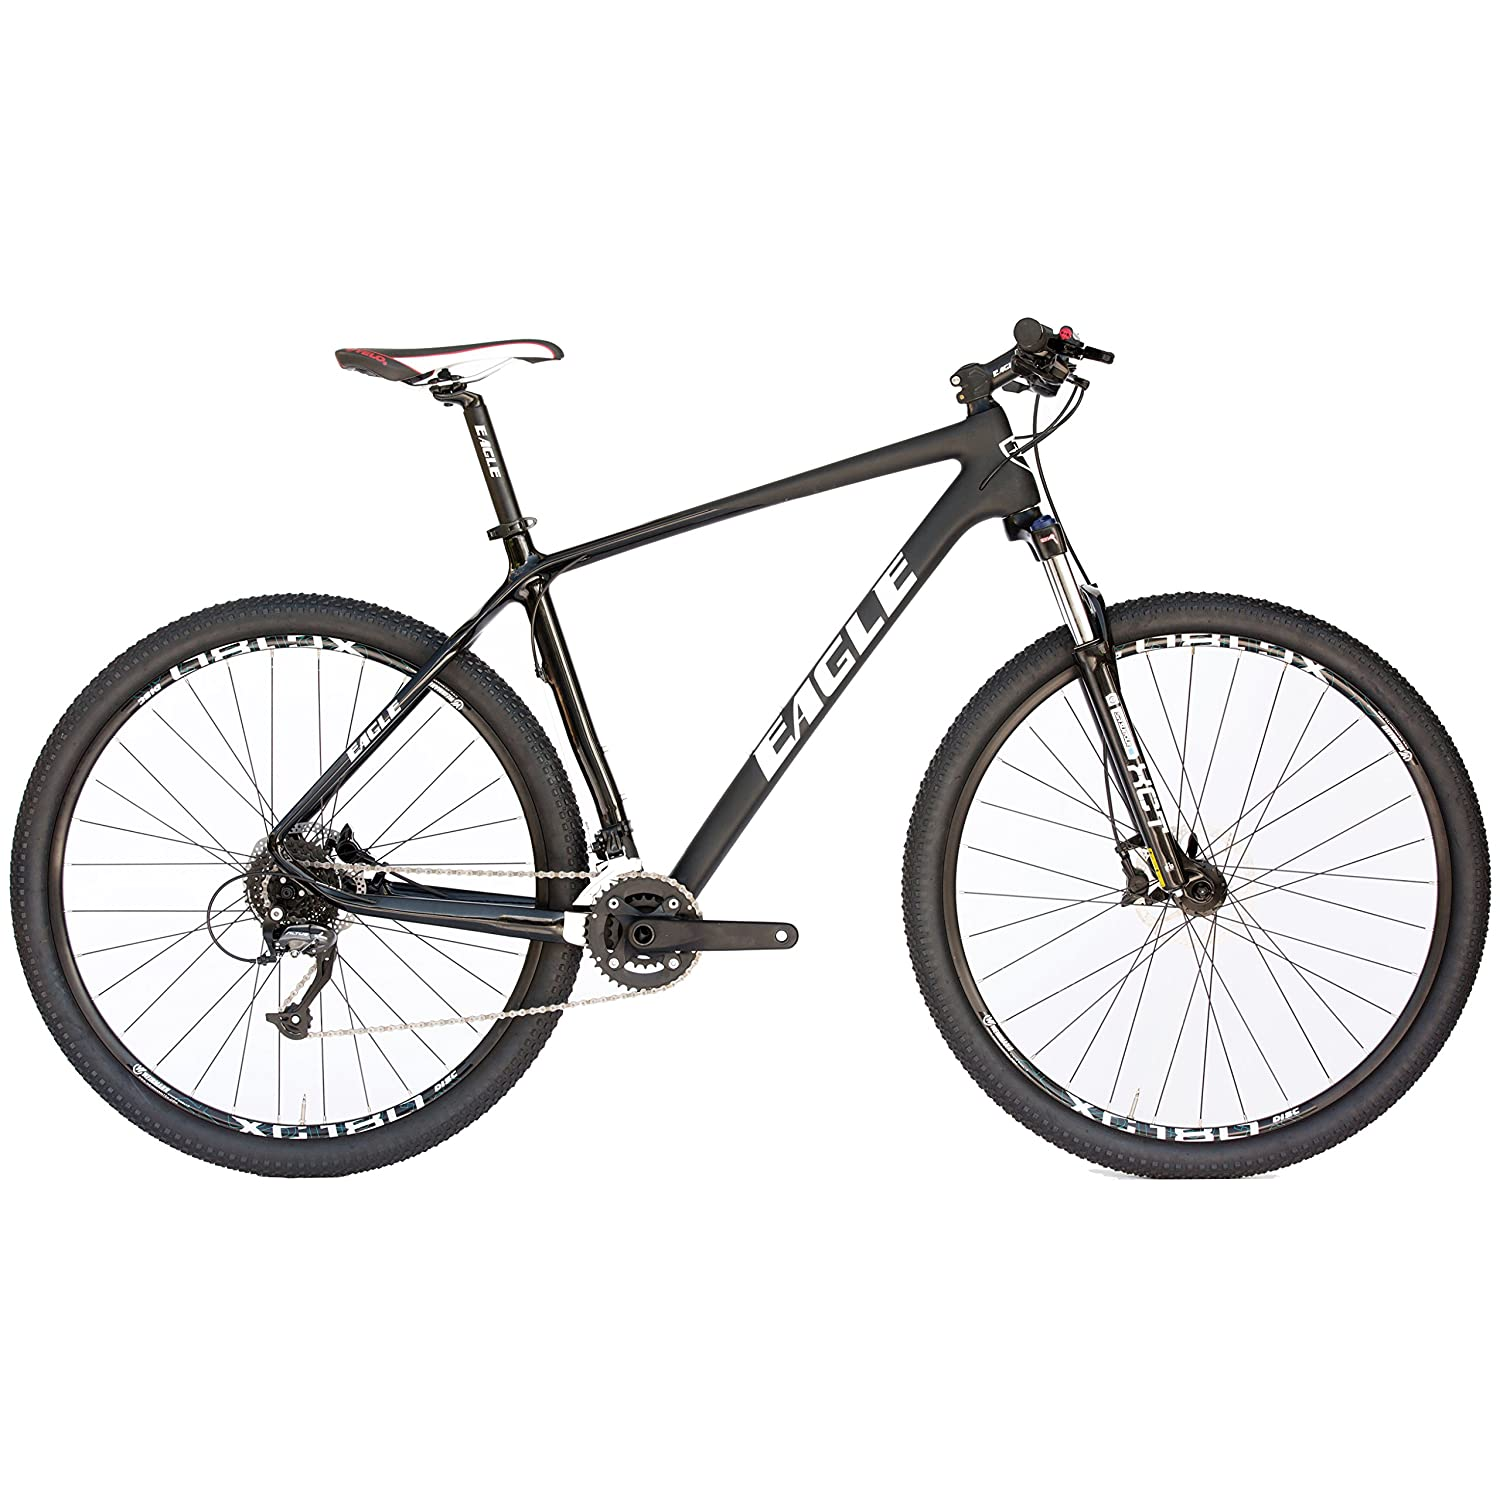 Eagle Patriot Carbon Fiber Mountain Bike Series - Shimano Deore